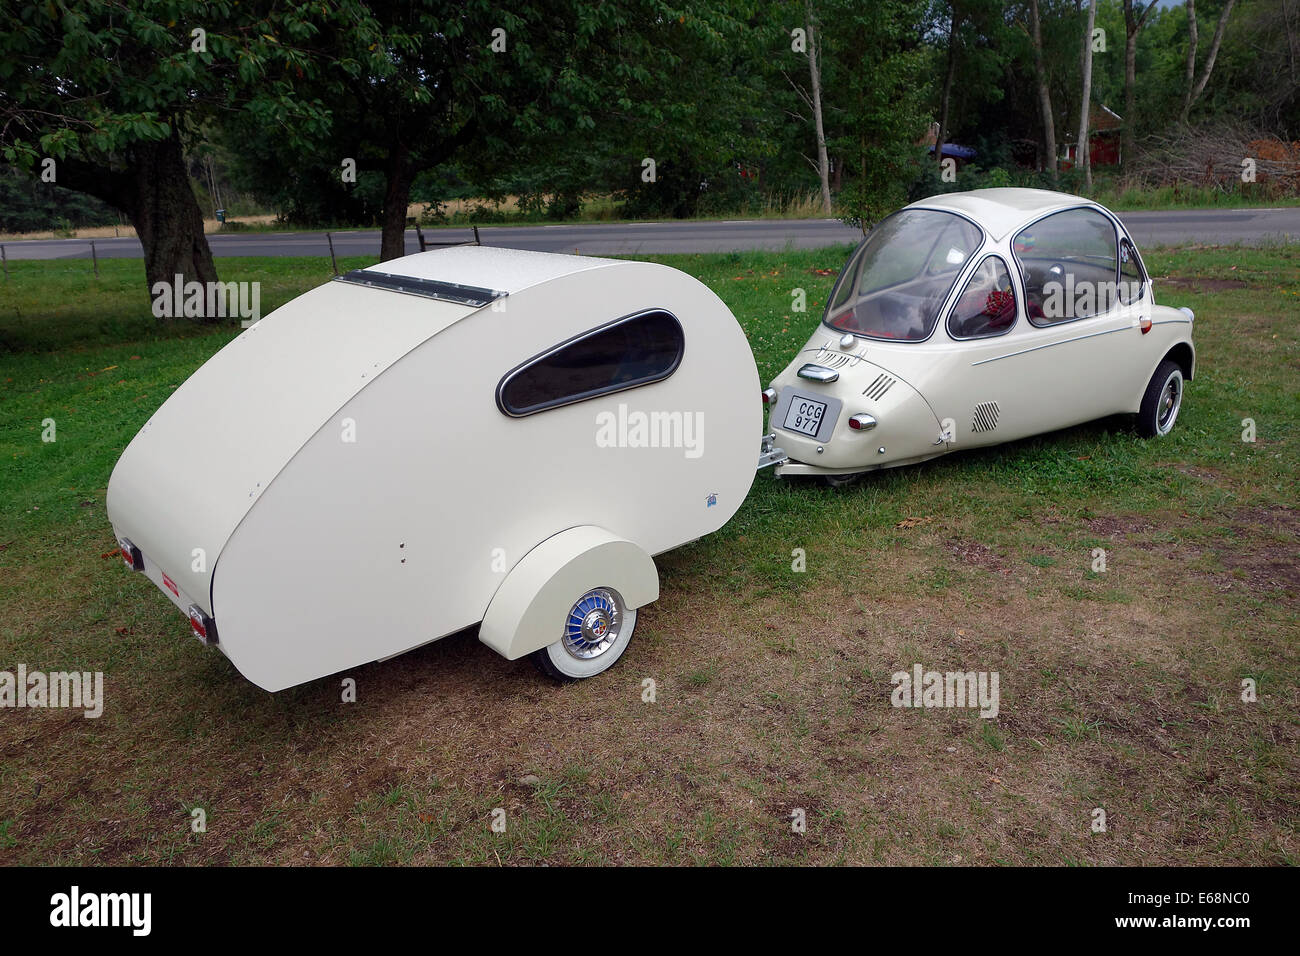 Heinkel Kabine Microcar From 1956 With Lightweight Homemade Camping Trailer